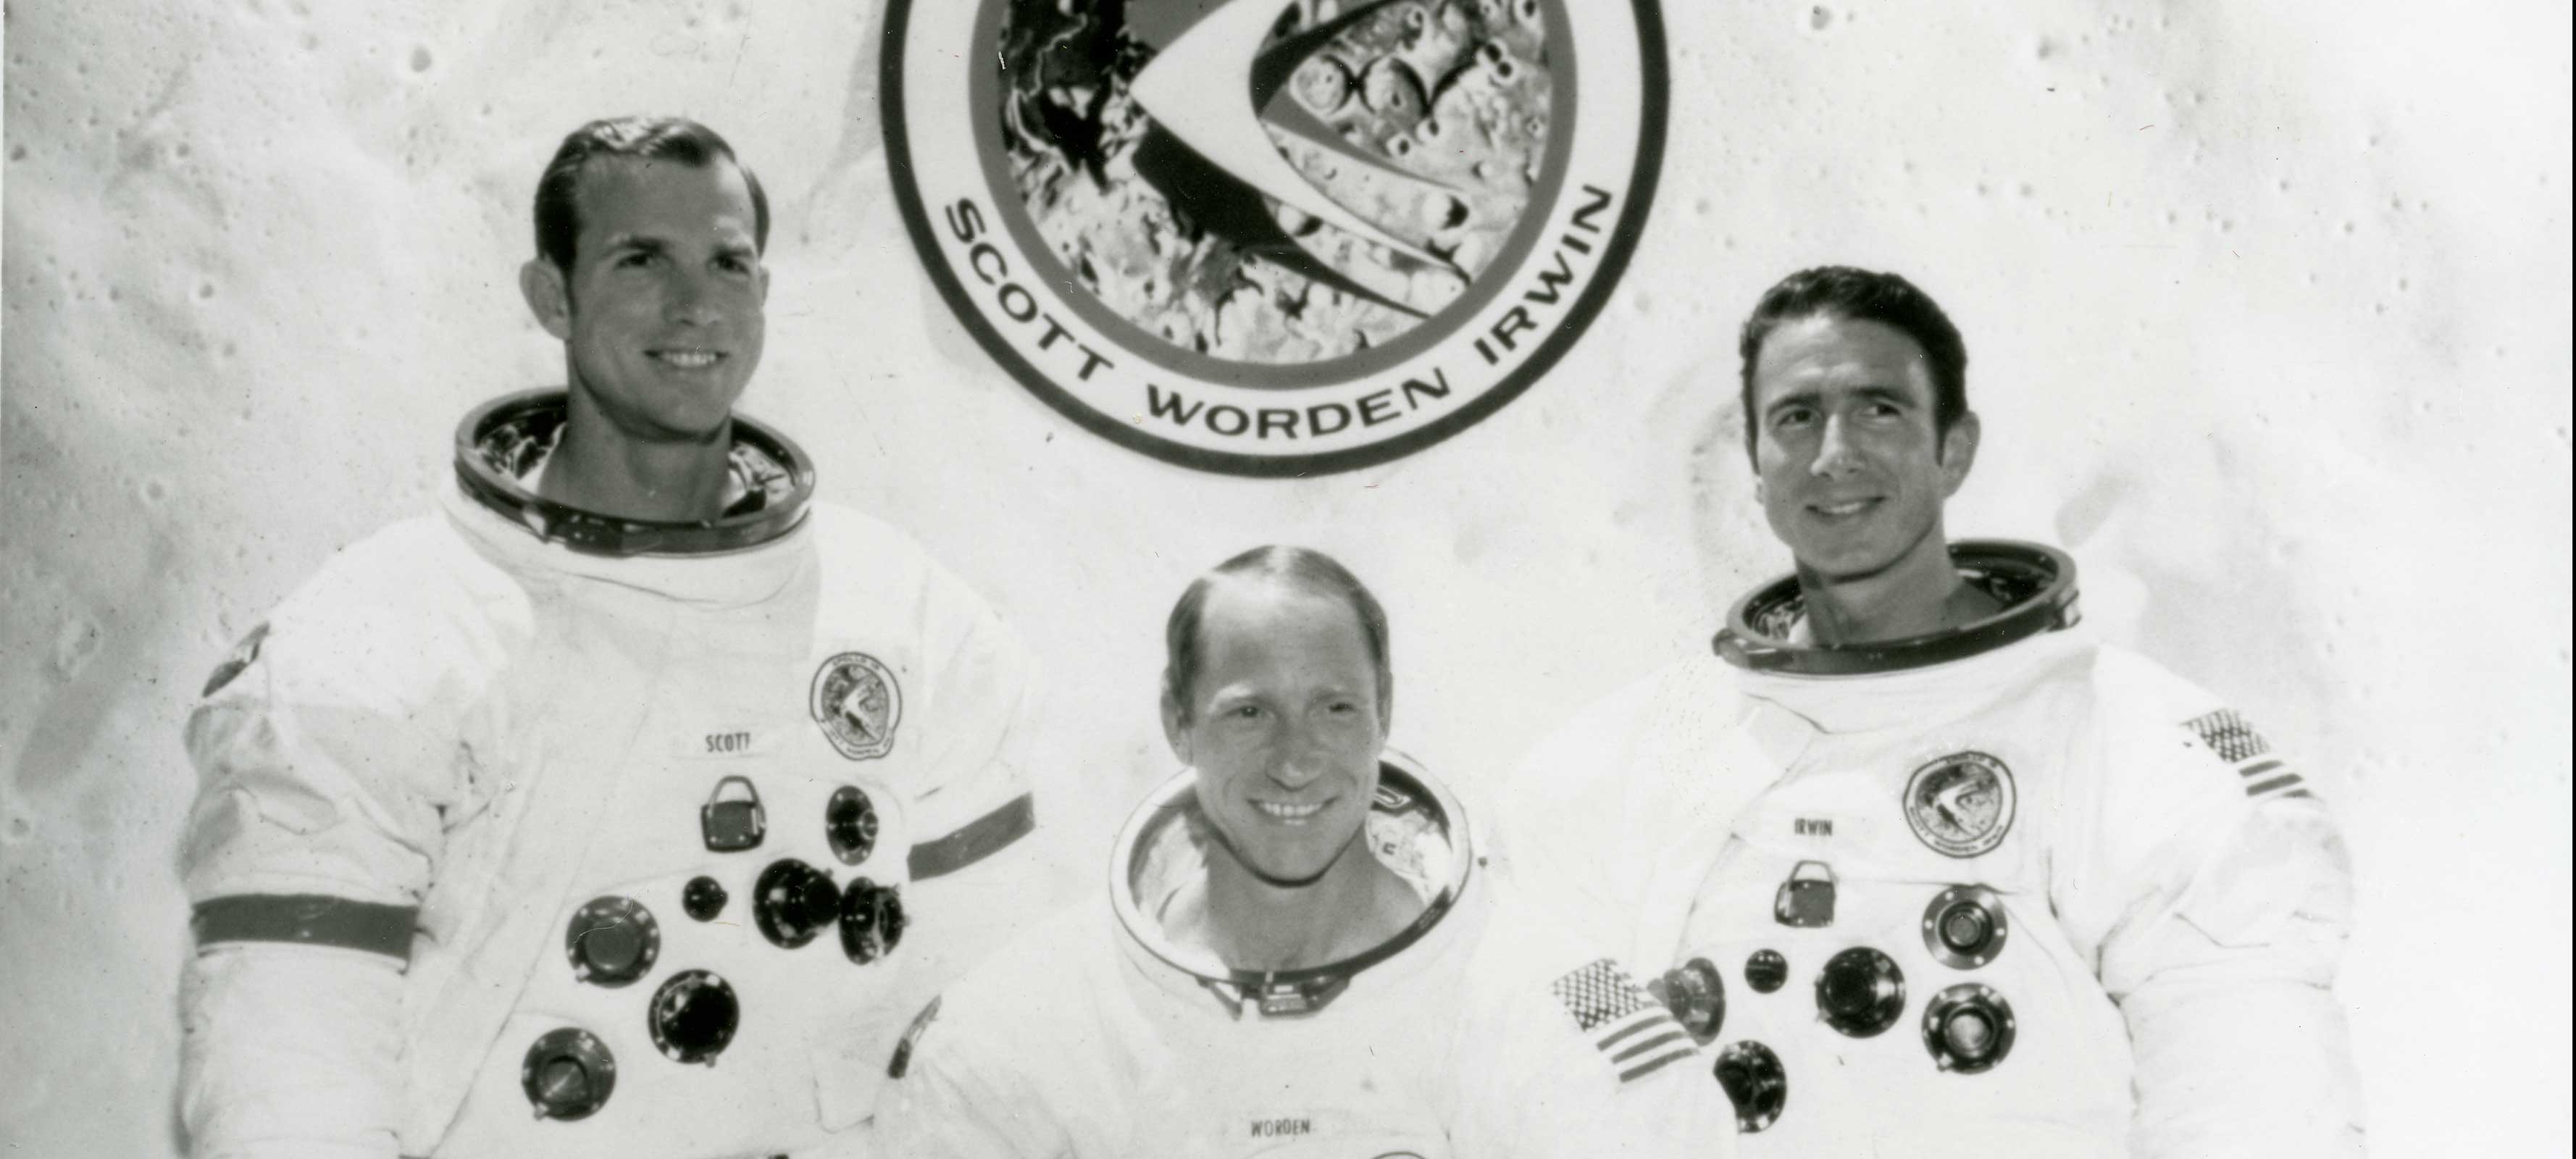 Black and white image of astronauts